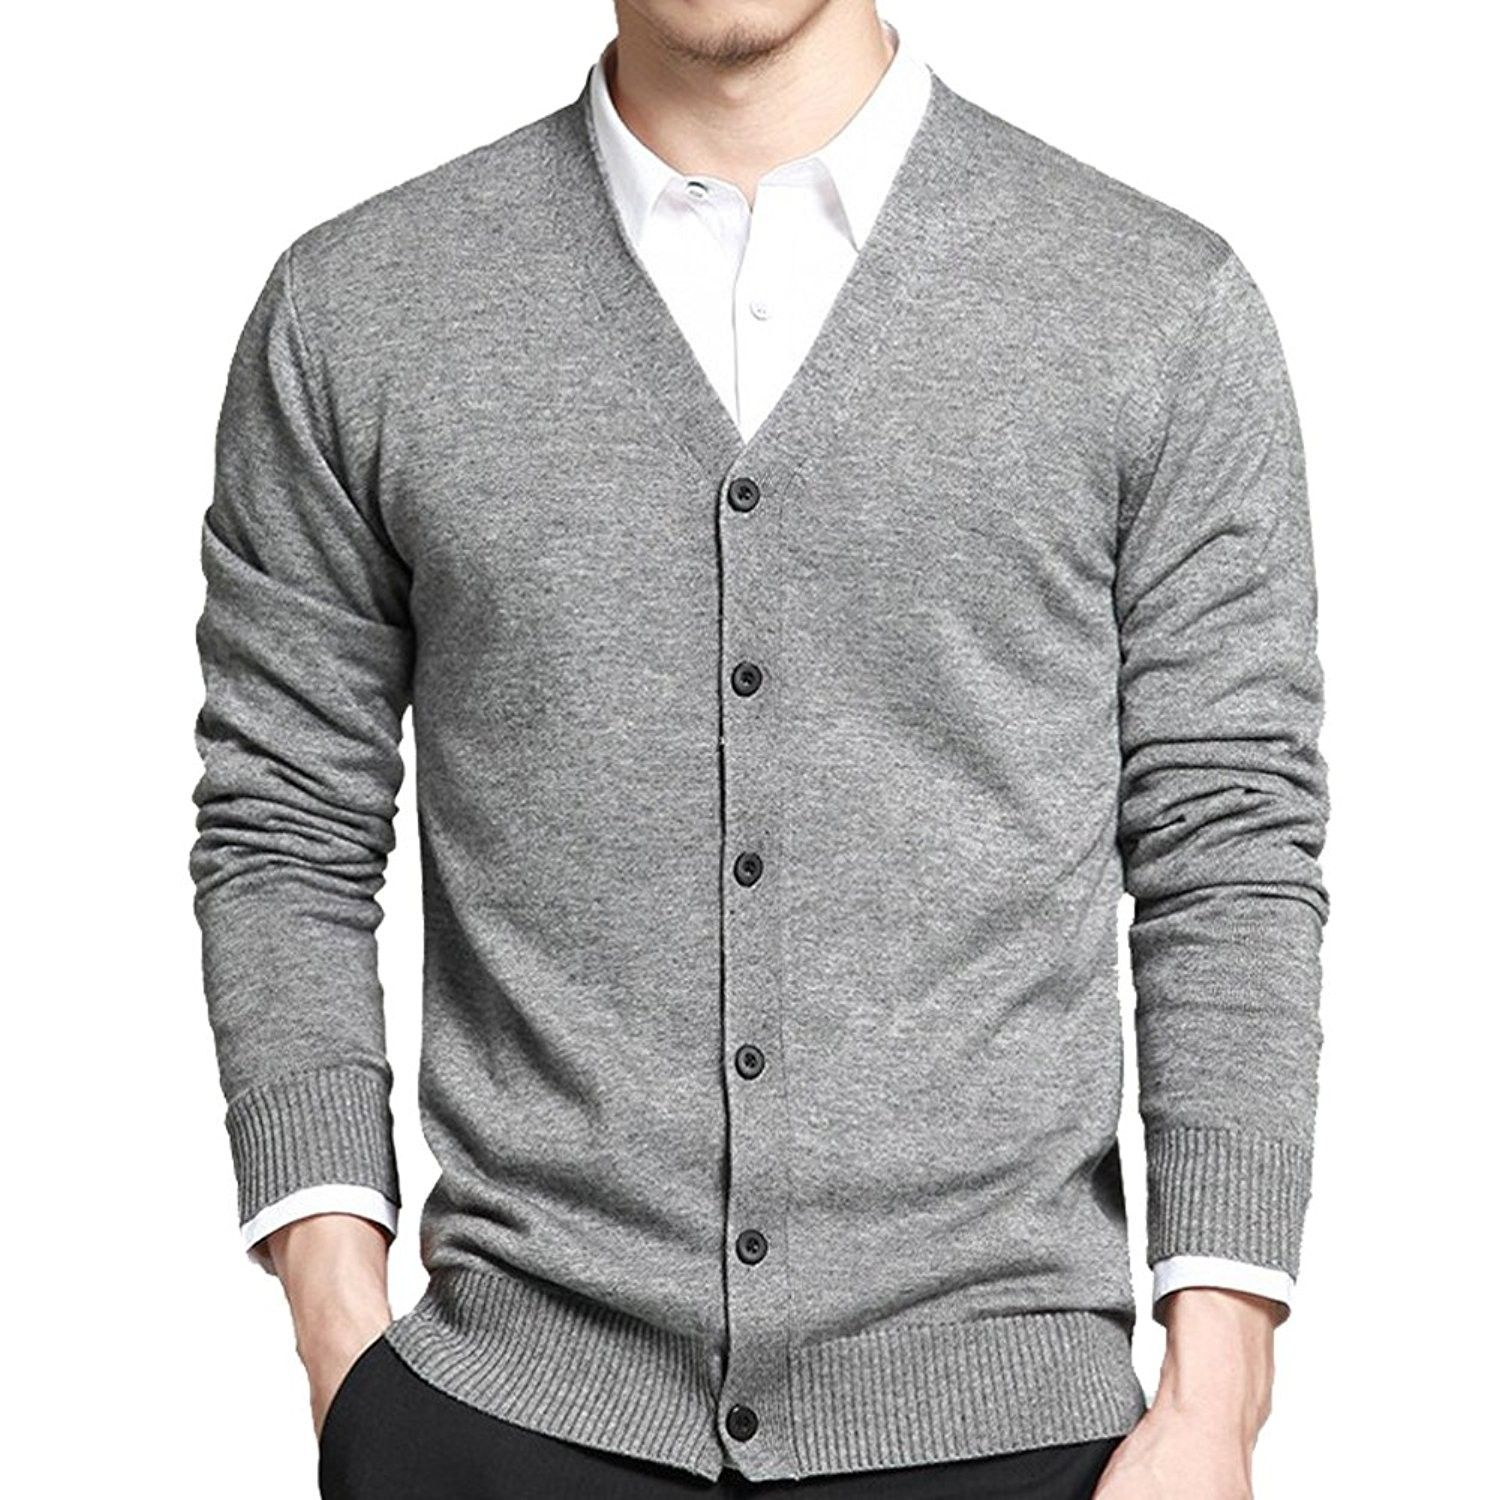 Men's Clothing Gant For Mens Fitted Shawl V-neck Long Sleeve Cardigan Jumper Wool Knit Medium M Jumpers & Cardigans